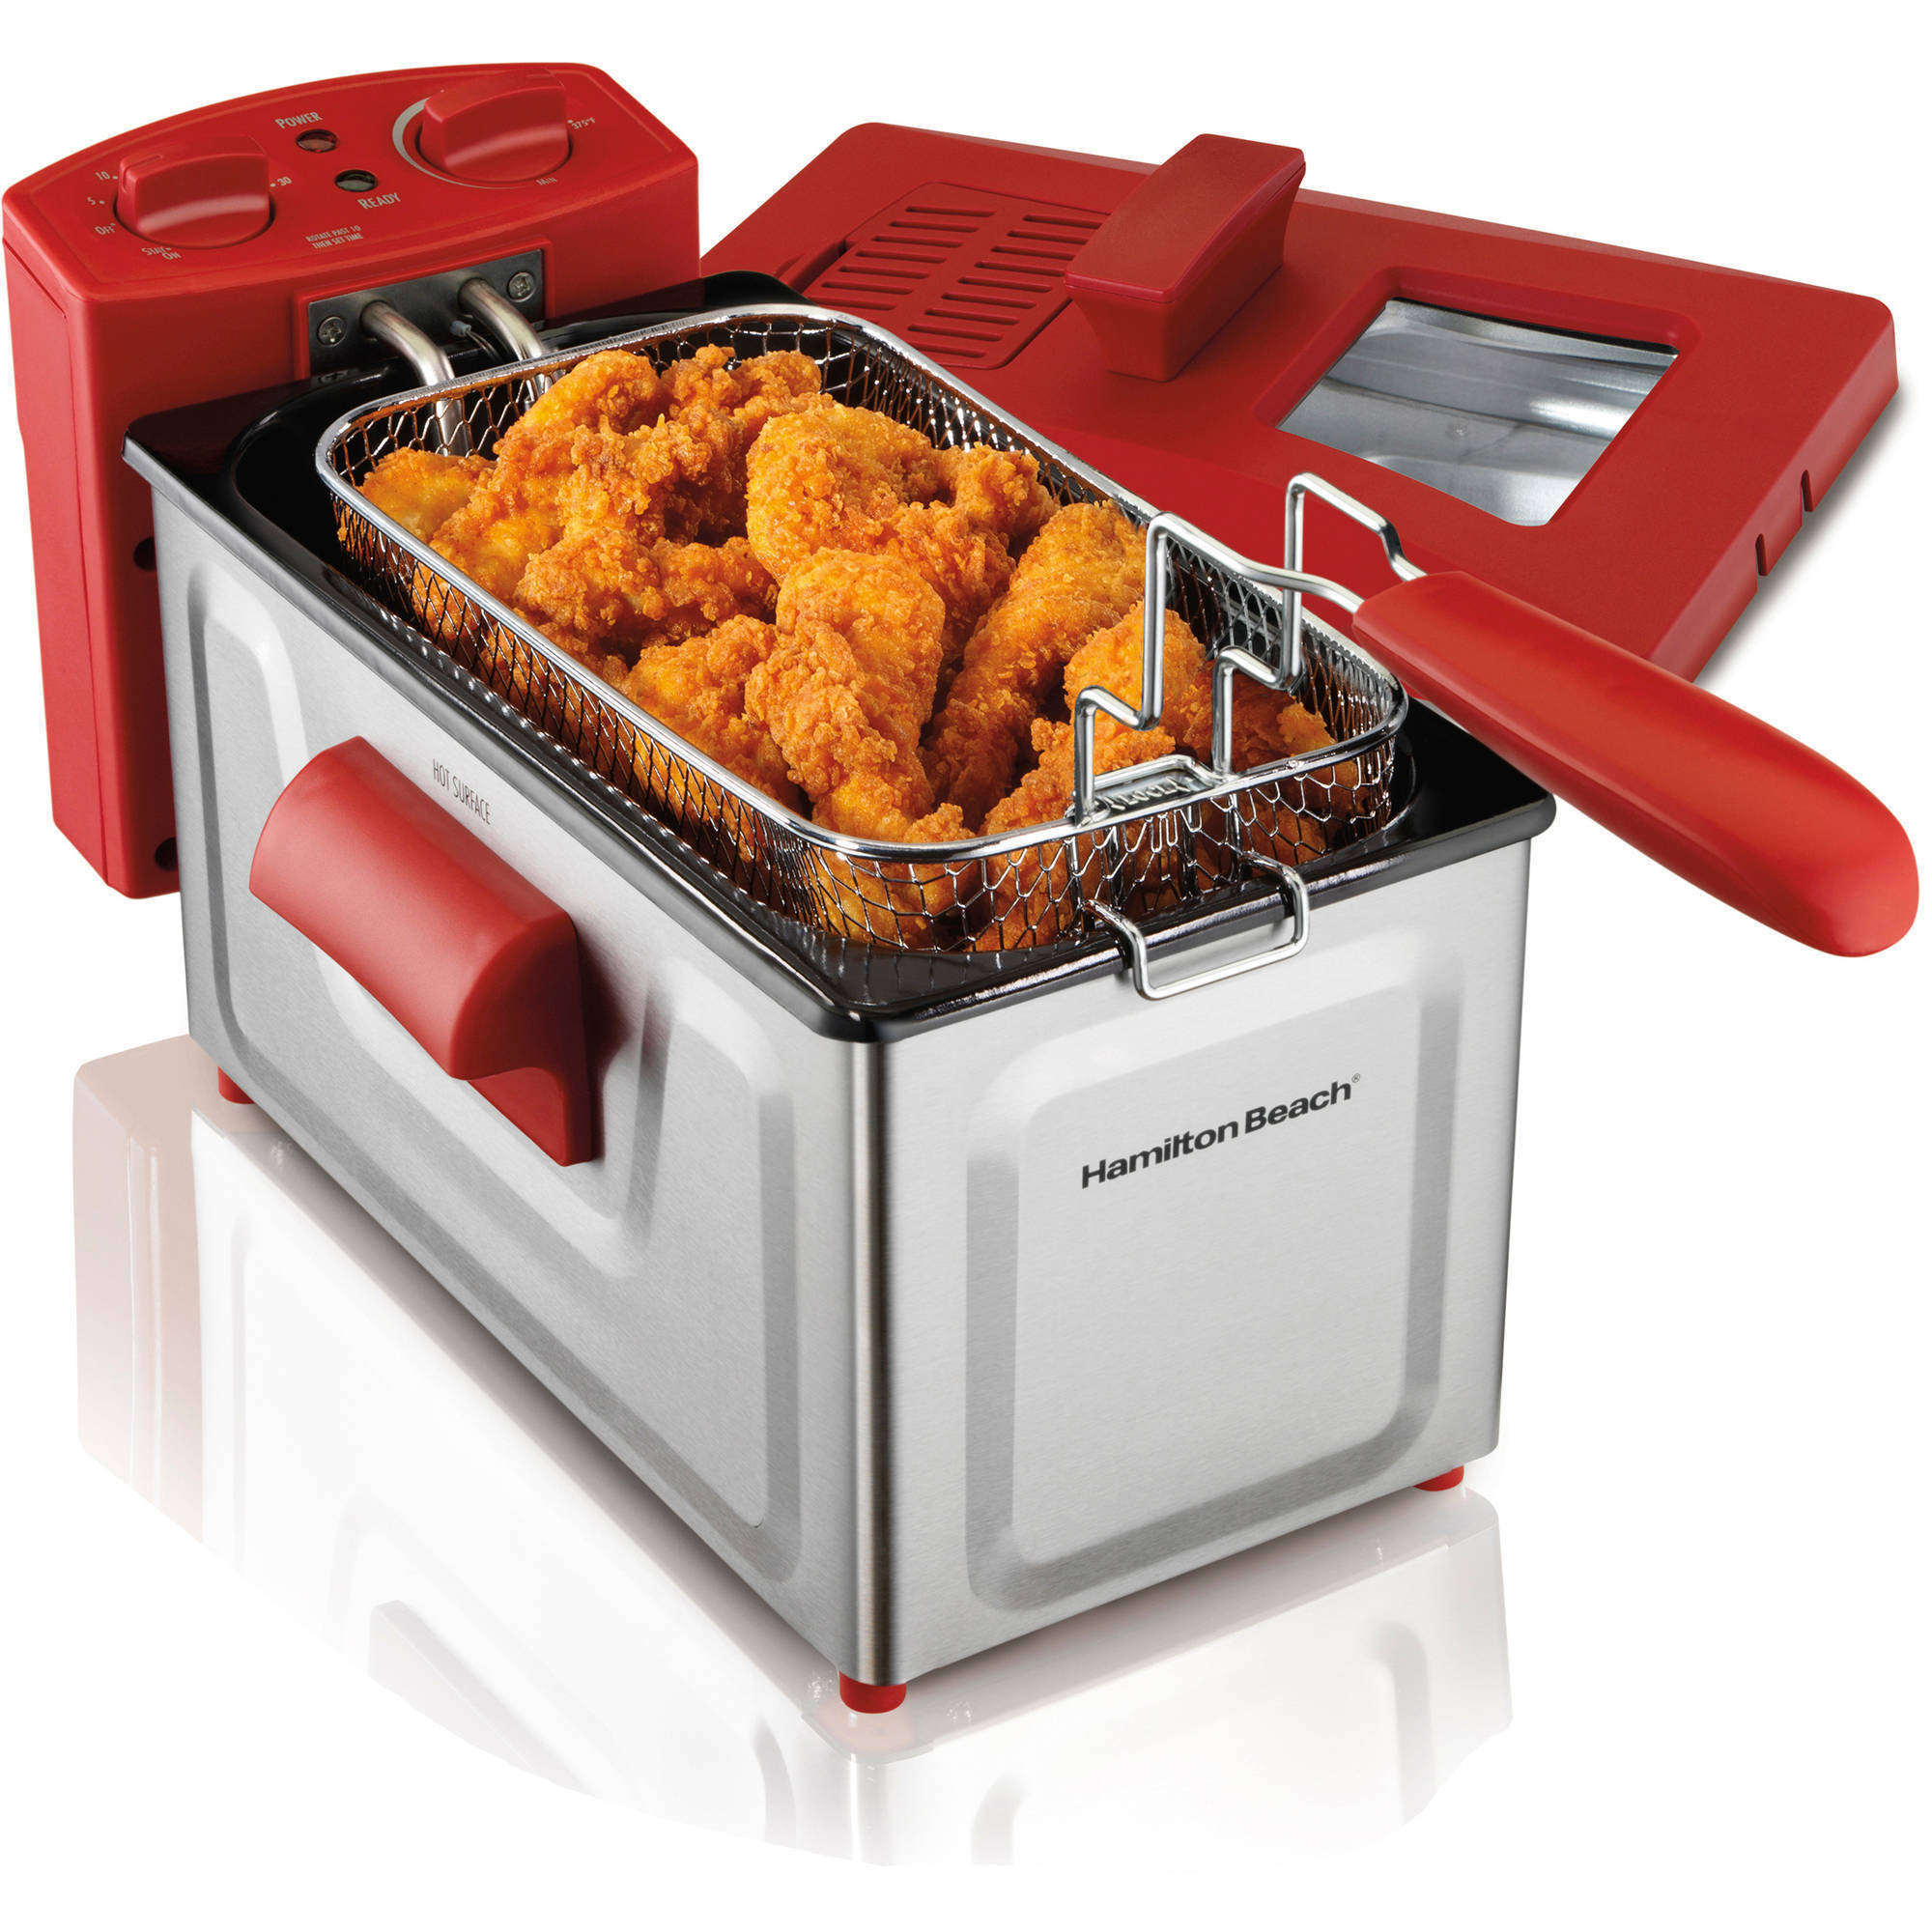 Hamilton Beach 2-Liter Professional Deep Fryer